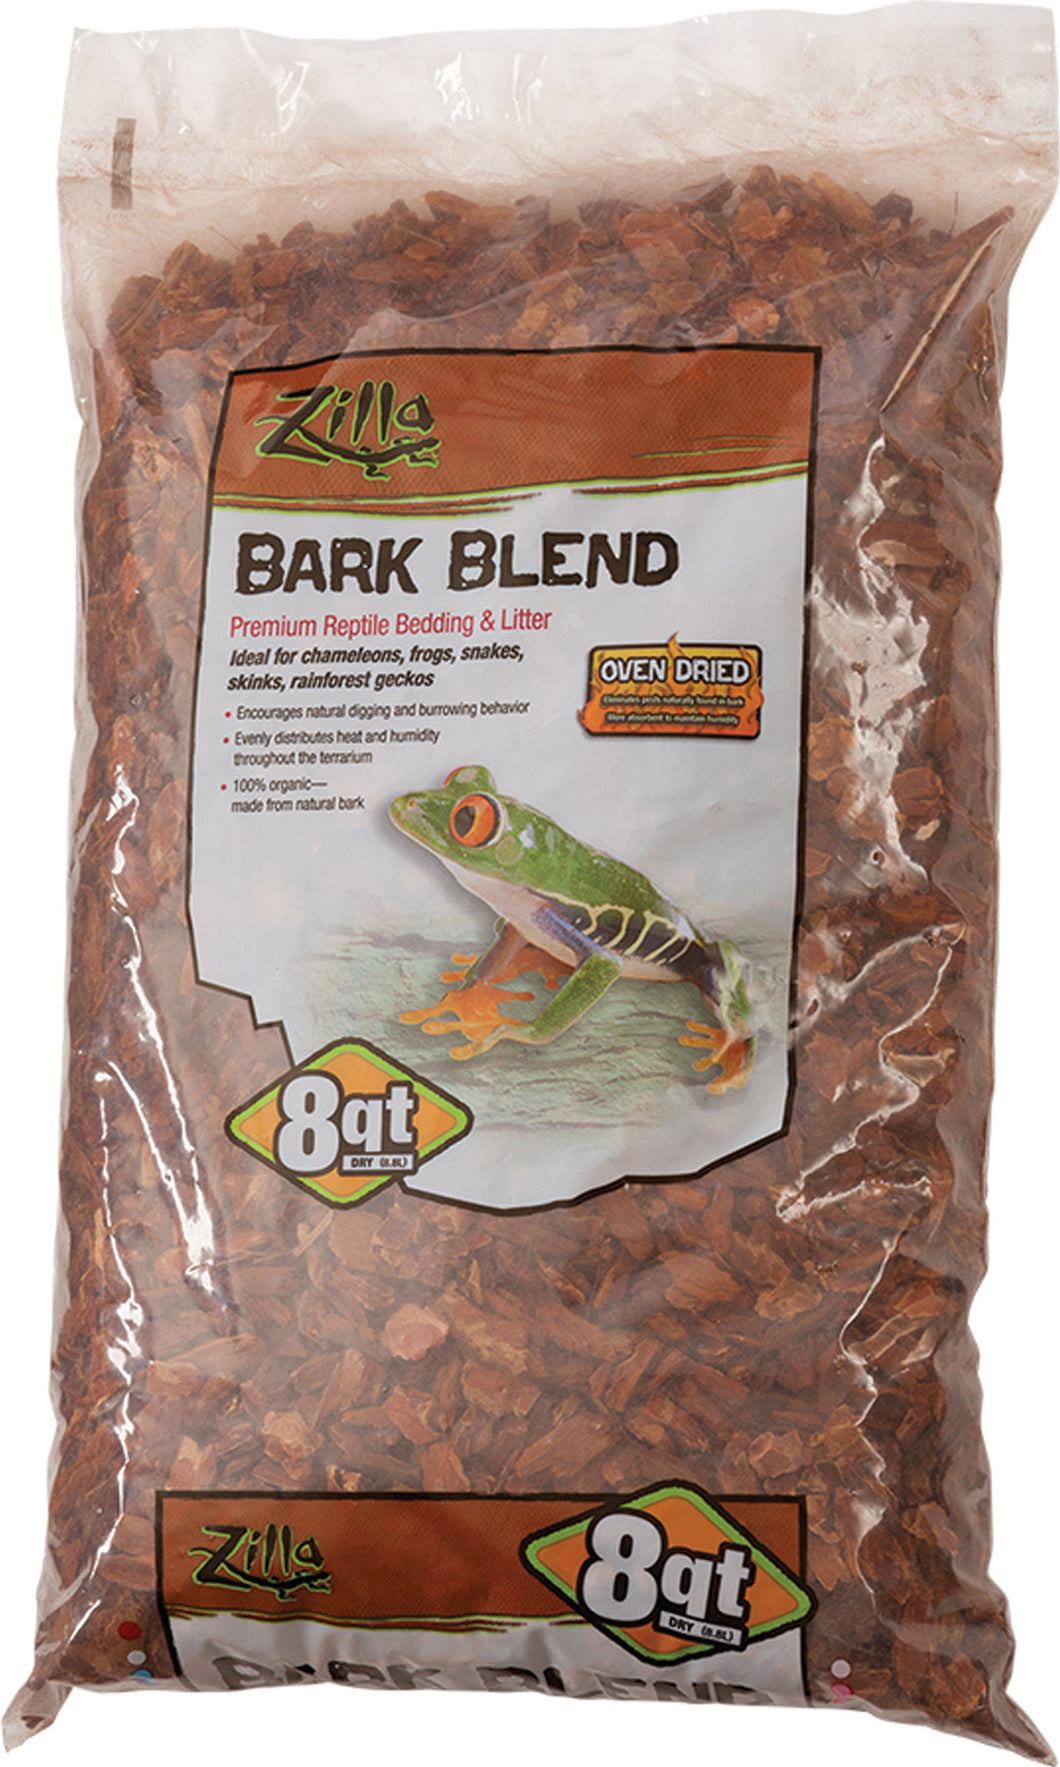 Bark Blend Reptile Bedding & Litter